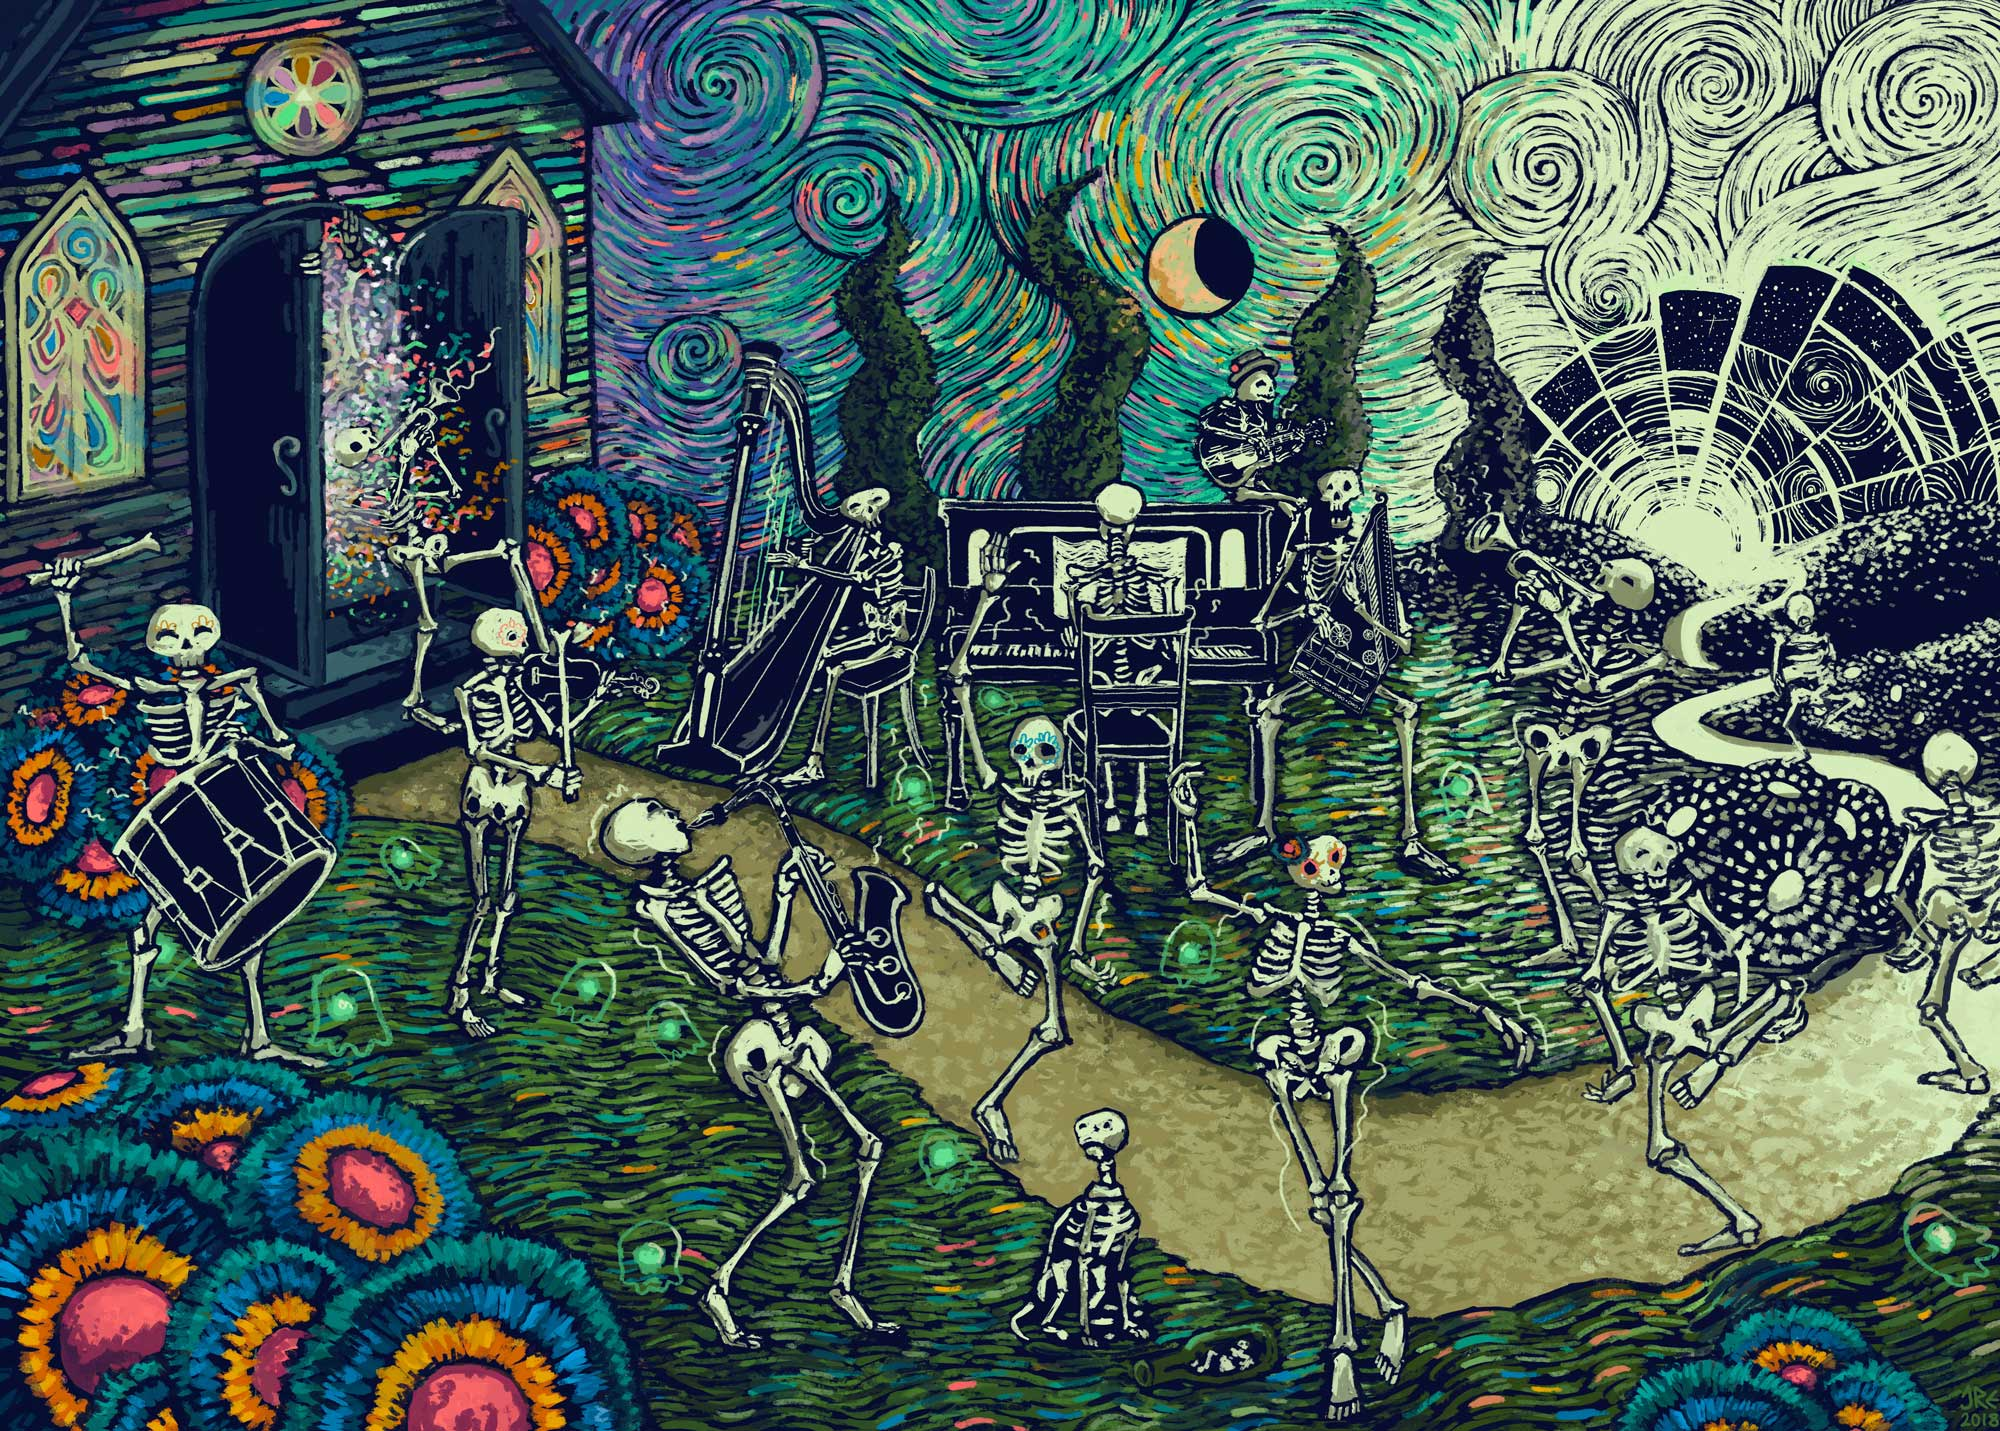 Malerei: James R. Eads James-R-Eads-paintings_05